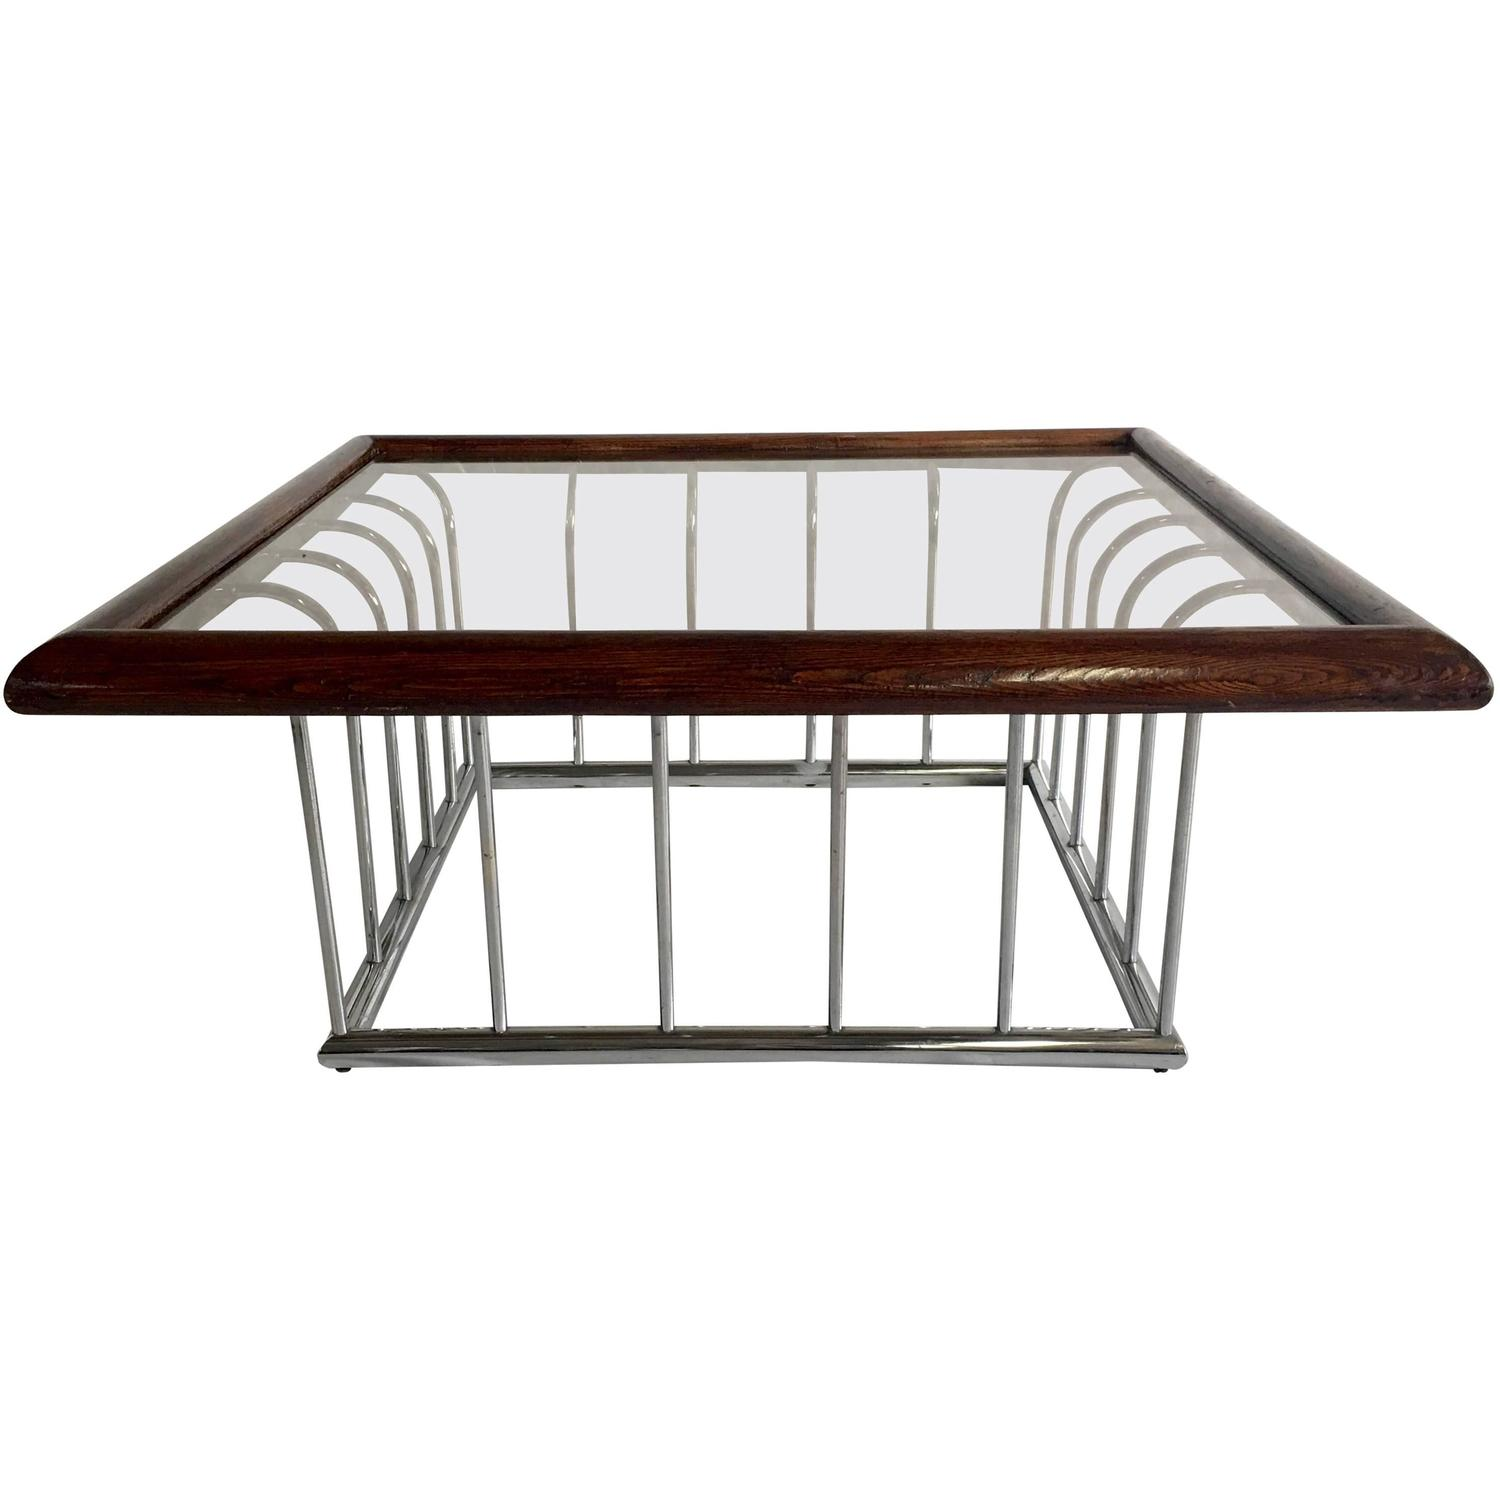 Milo Baughman Style Mid Century Wood And Chrome Cocktail Table For Sale At 1stdibs